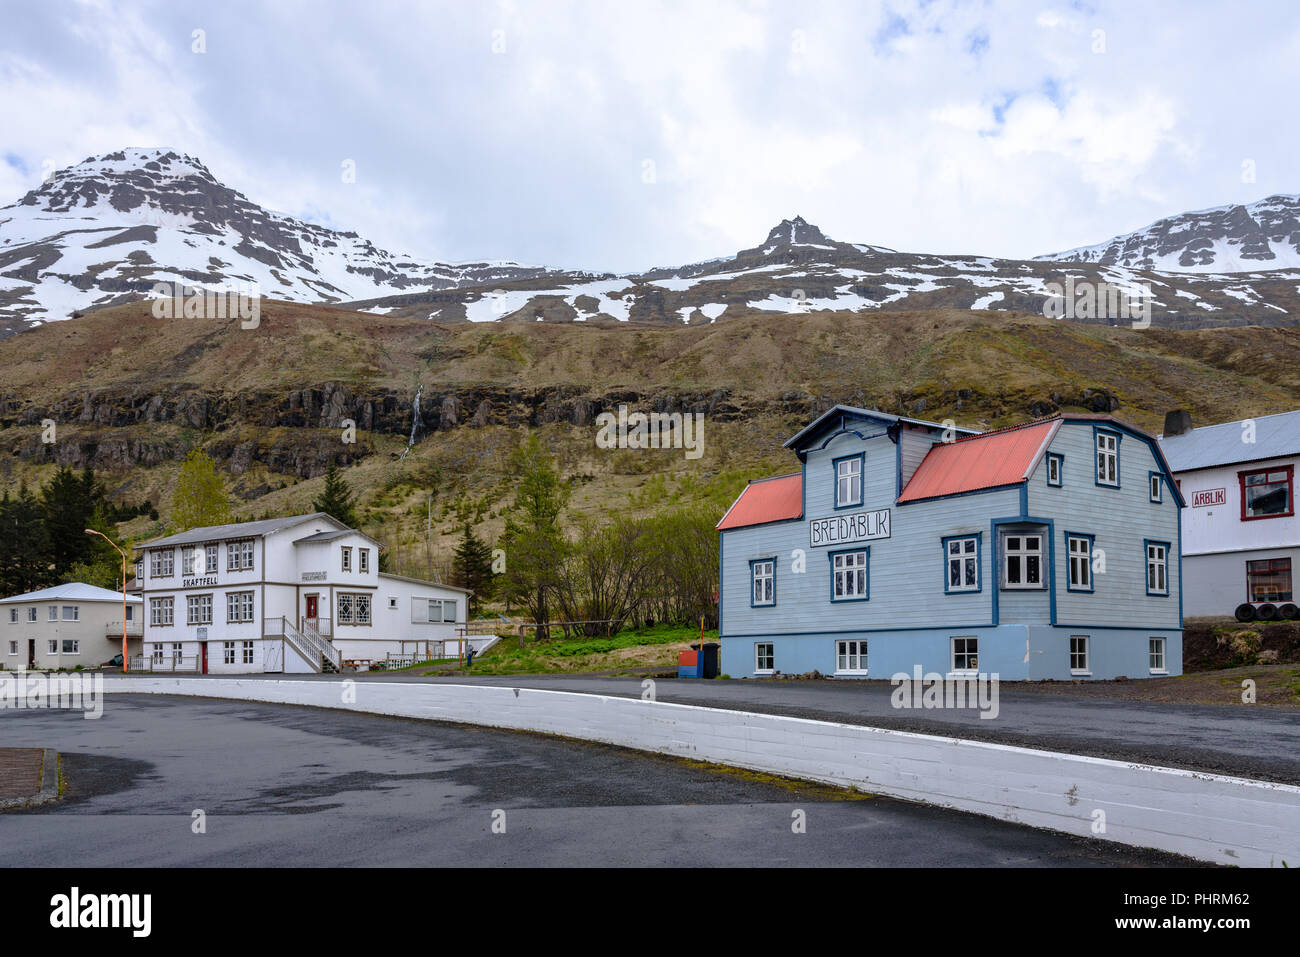 Houses in Seyðisfjörður, Iceland with snow-capped hills in the background - Stock Image